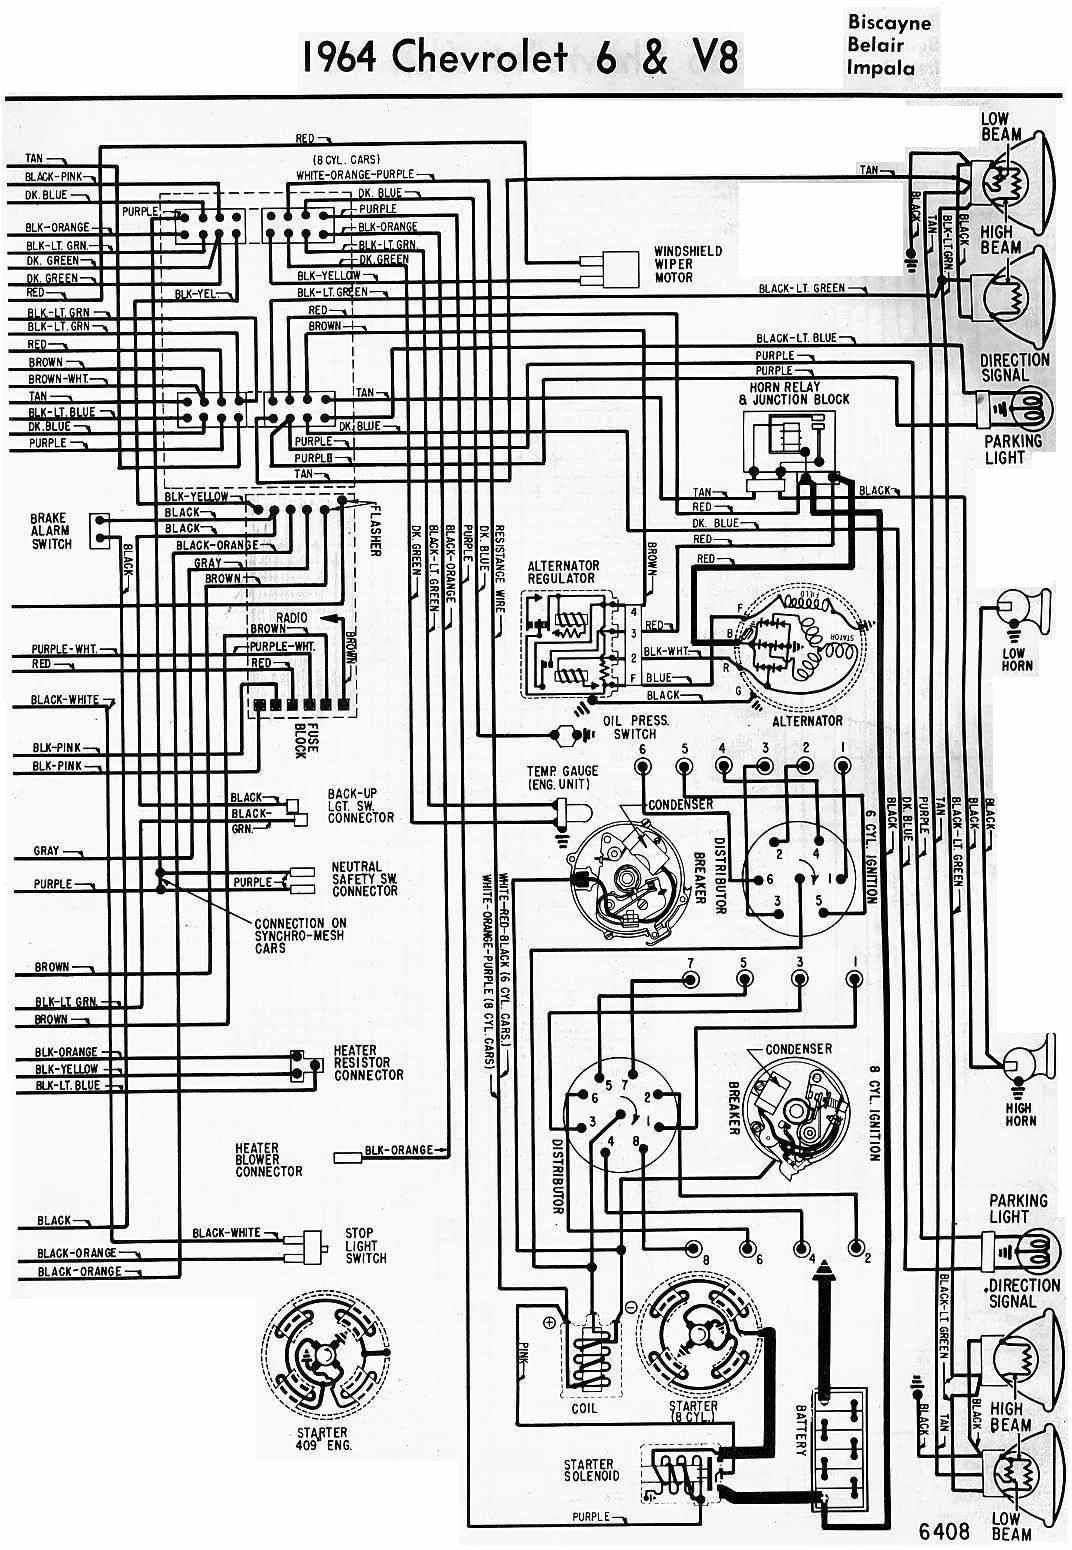 chevy electronic ignition wiring diagram wiring library rh uitgeverijdewereld nl